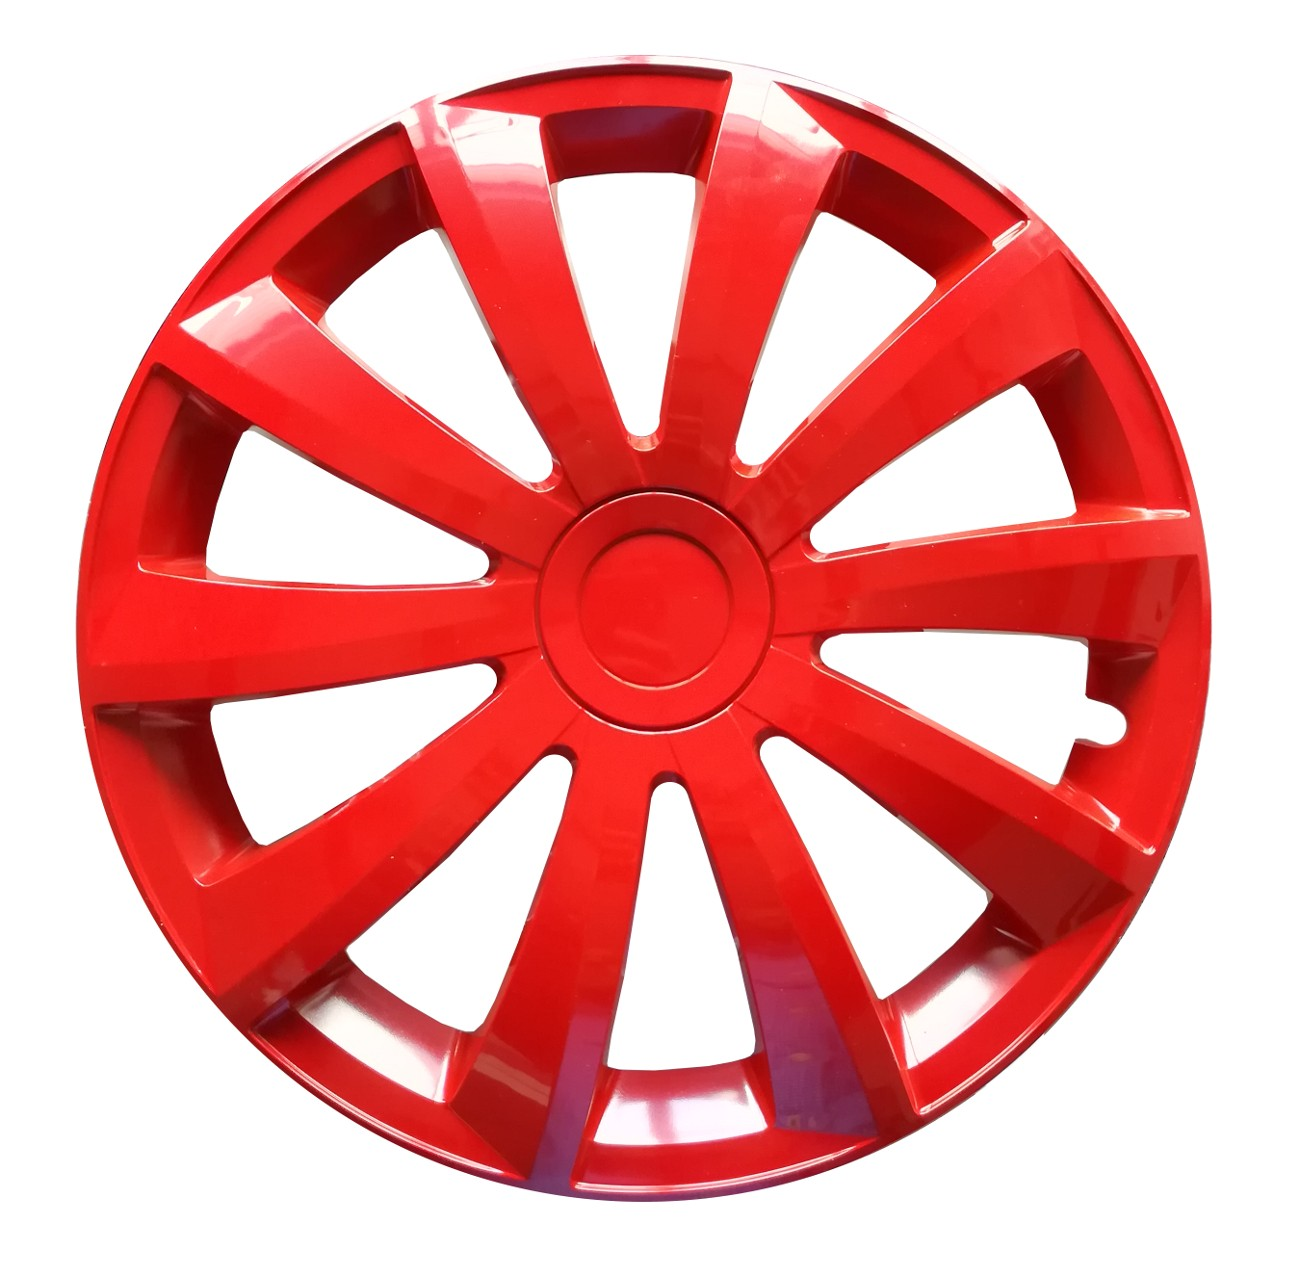 Fiat Panda 14 Red ONE Wheel Trim This Sale Is For One Wheel Trim If You Require a Set Please Change Quantity To 4